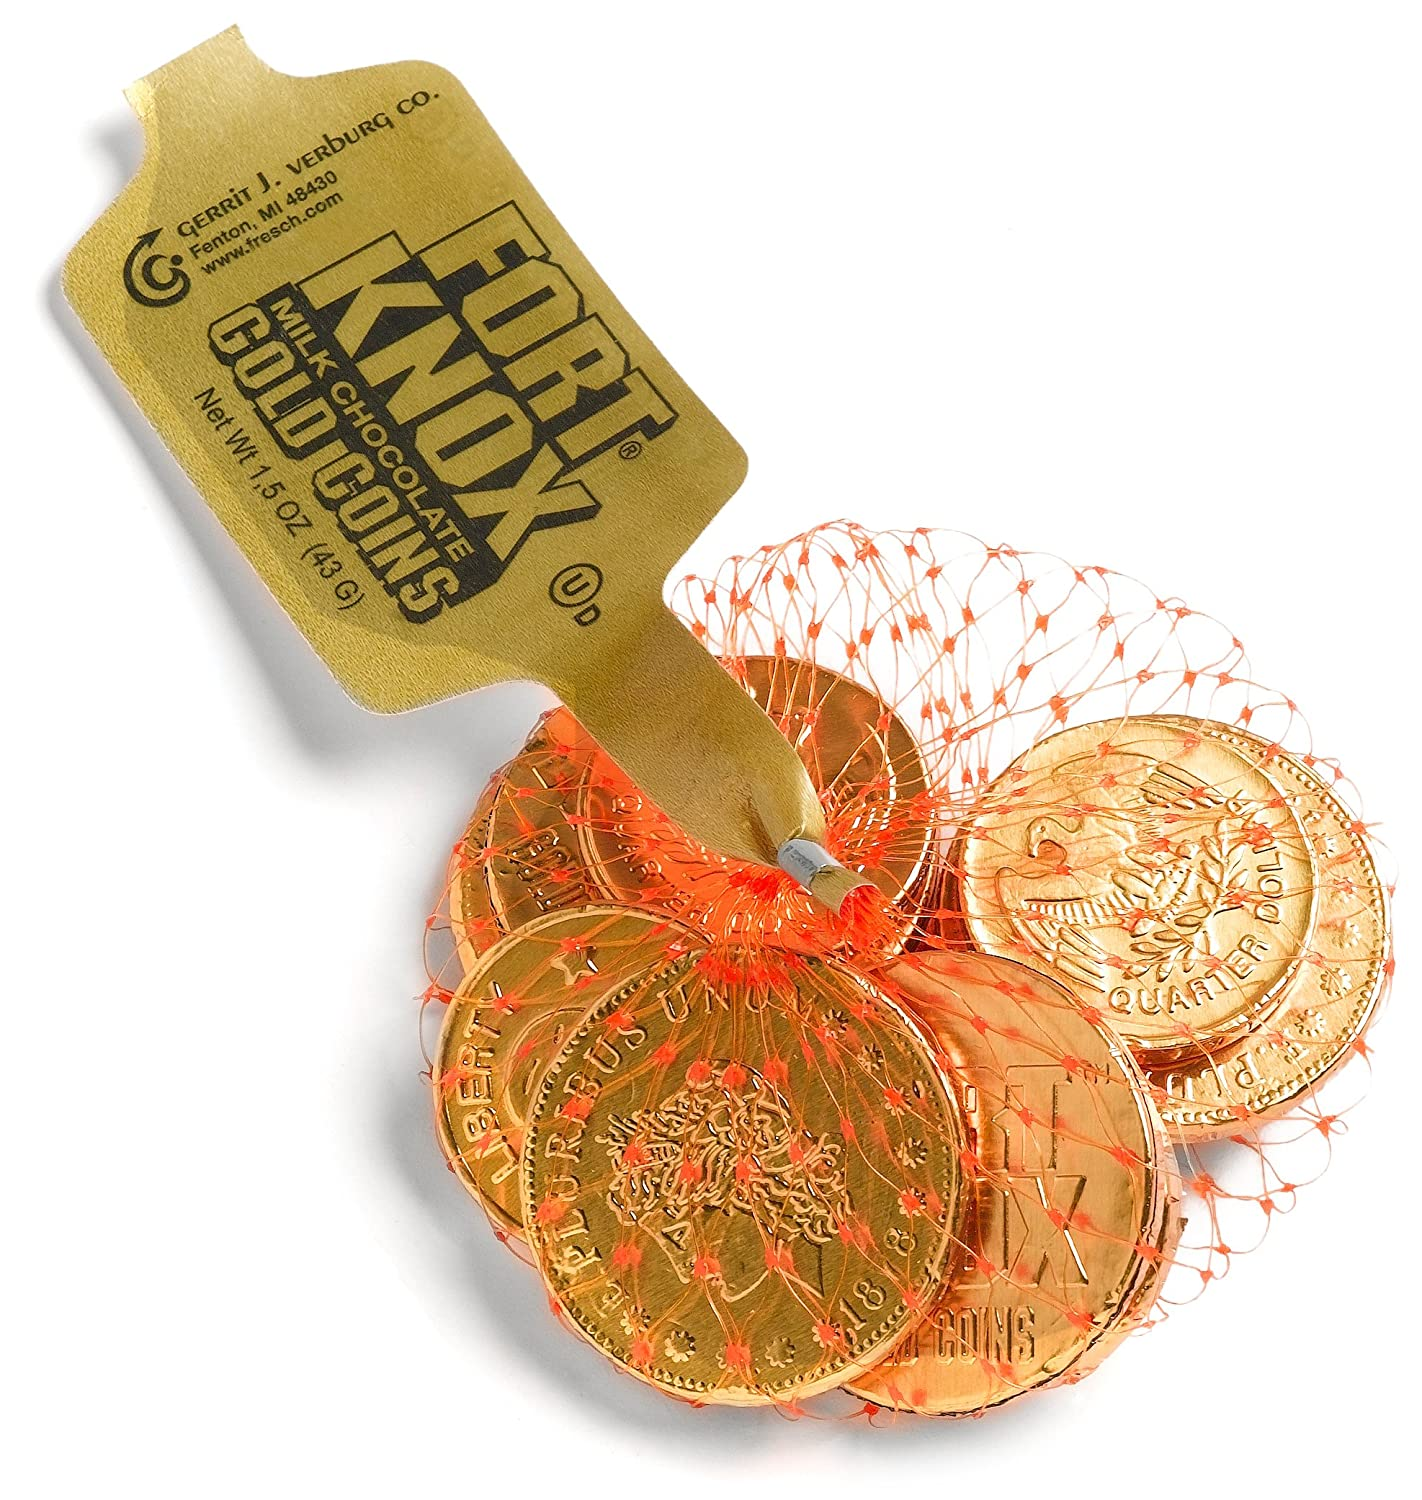 Amazon.com : Fort Knox Milk Chocolate Gold Coins, 1.5-Ounce ...